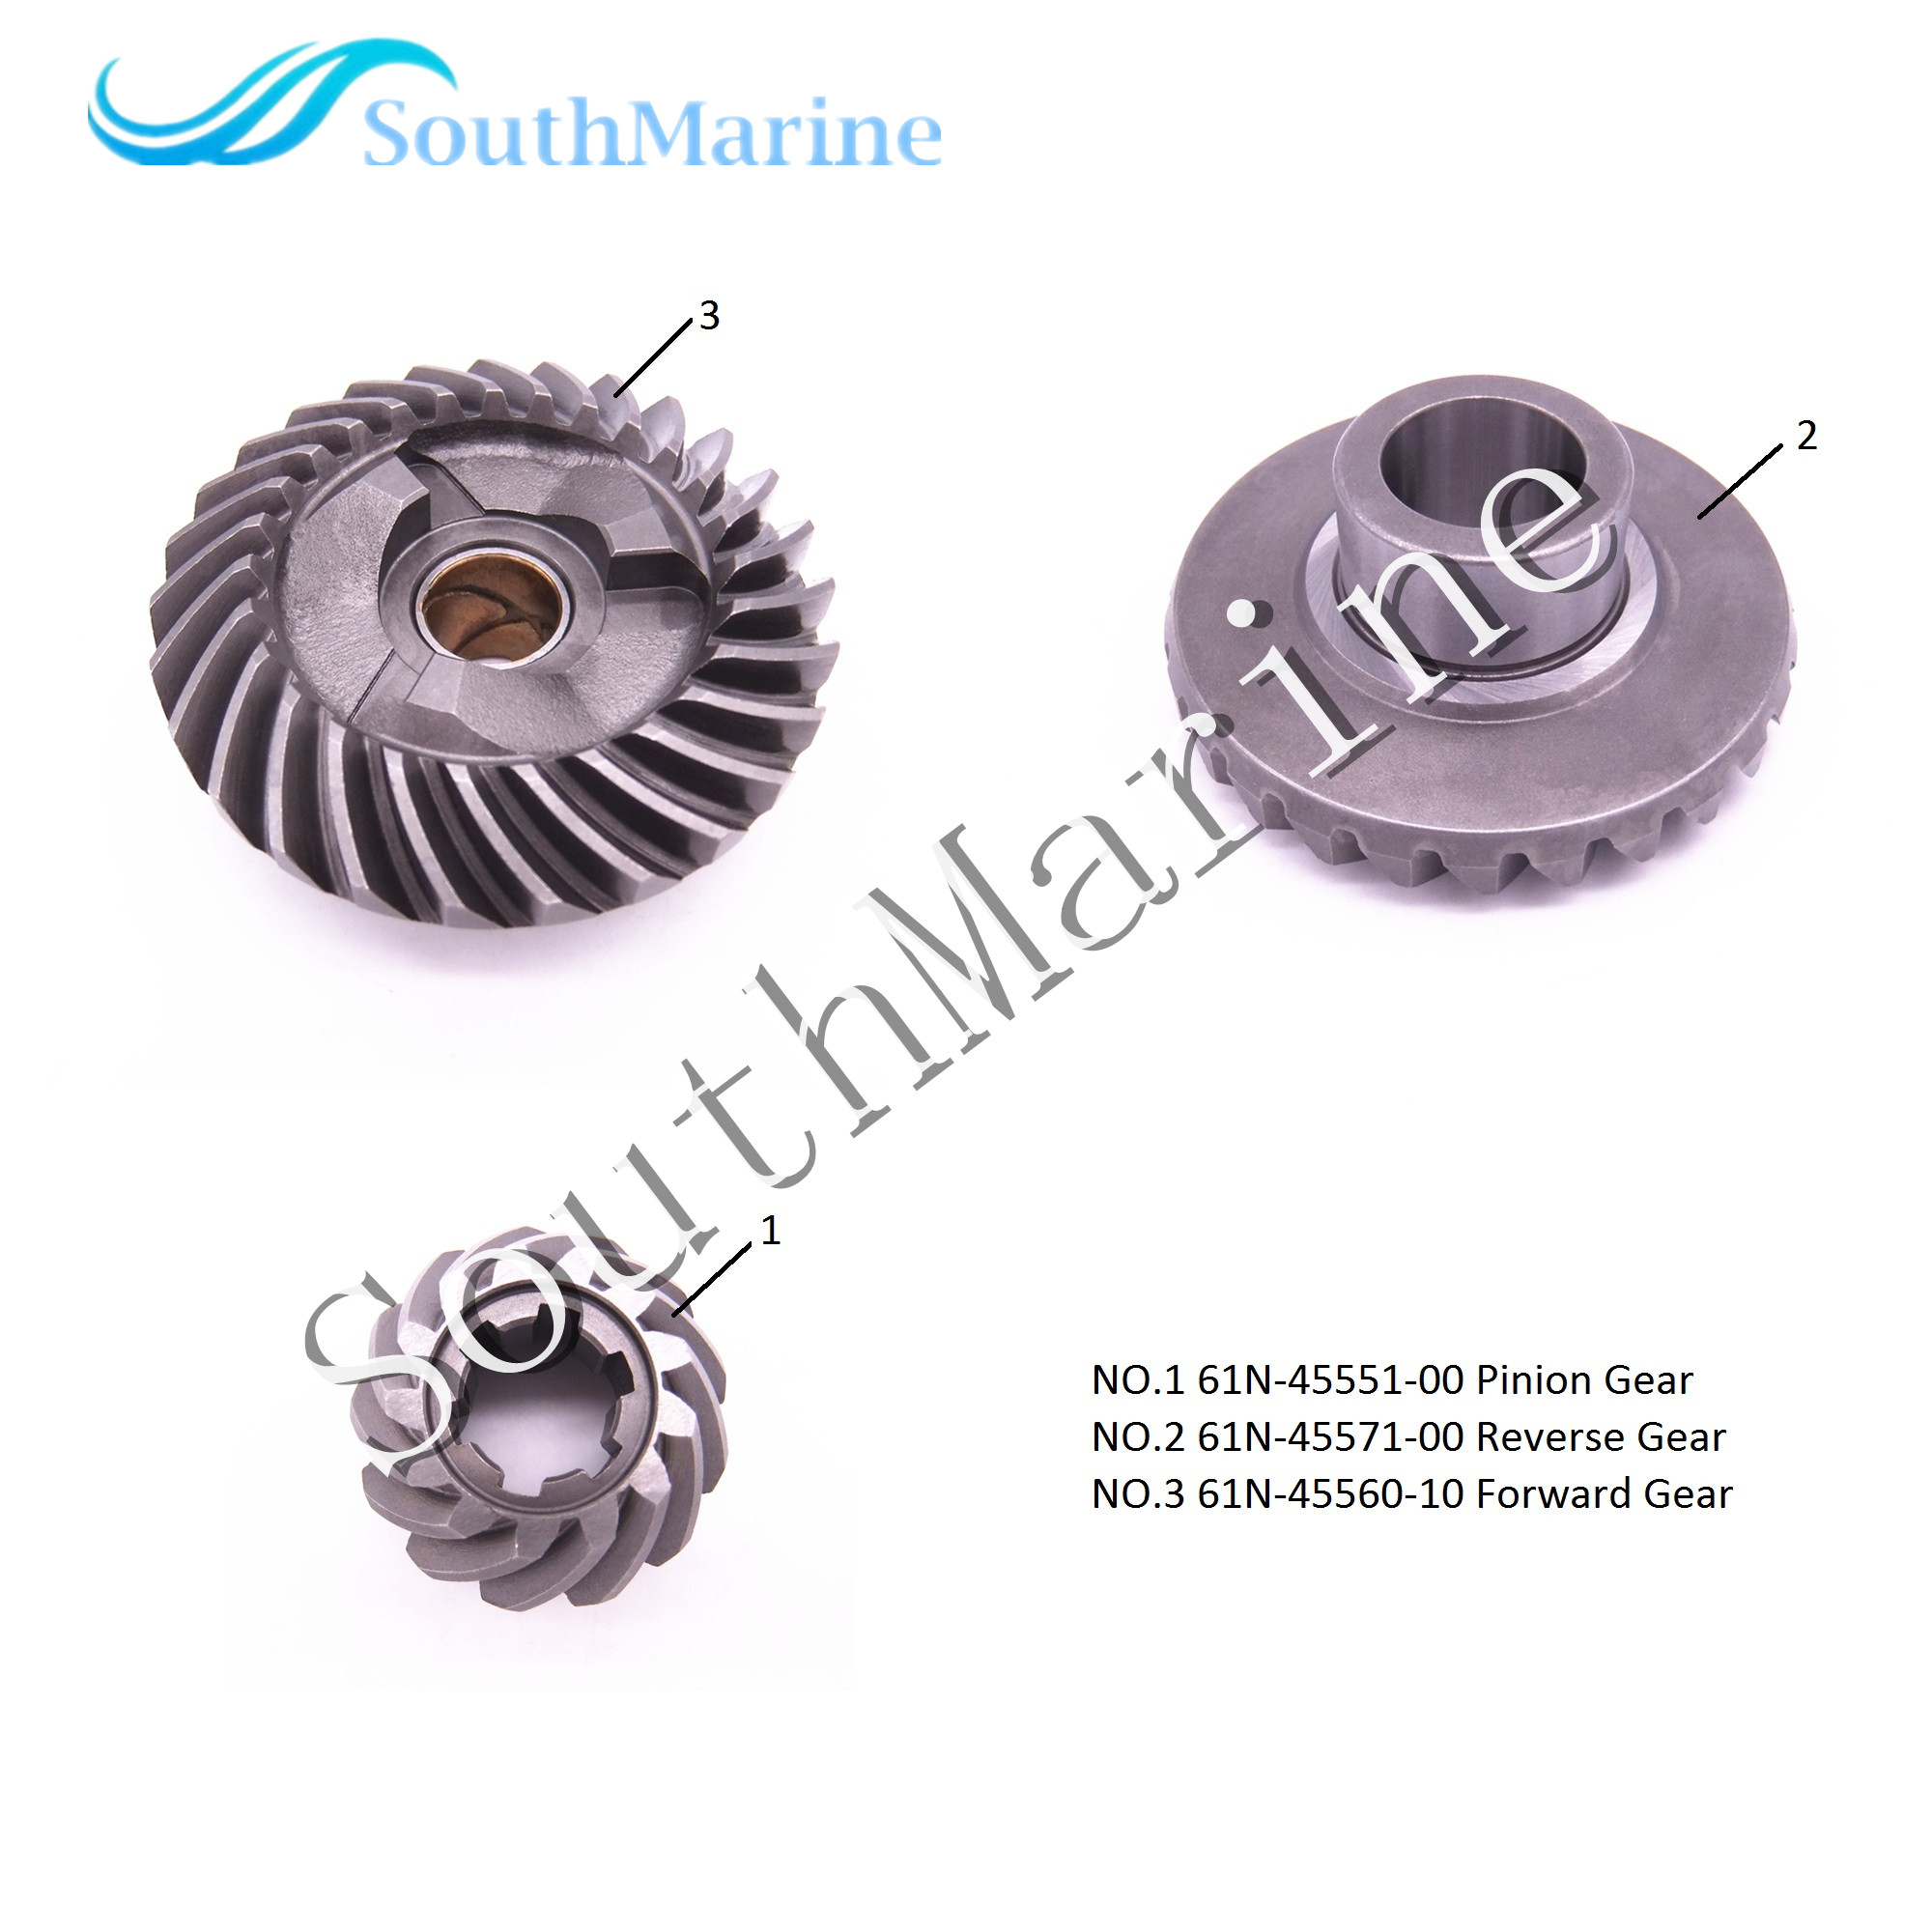 Outboard Engine 61N-45551-00 Pinion & 61N-45571-00 Reverse & 61N-45560-10 Forward Gear for Yamaha F25 E25B E30H 25B 30H she3515wt 00